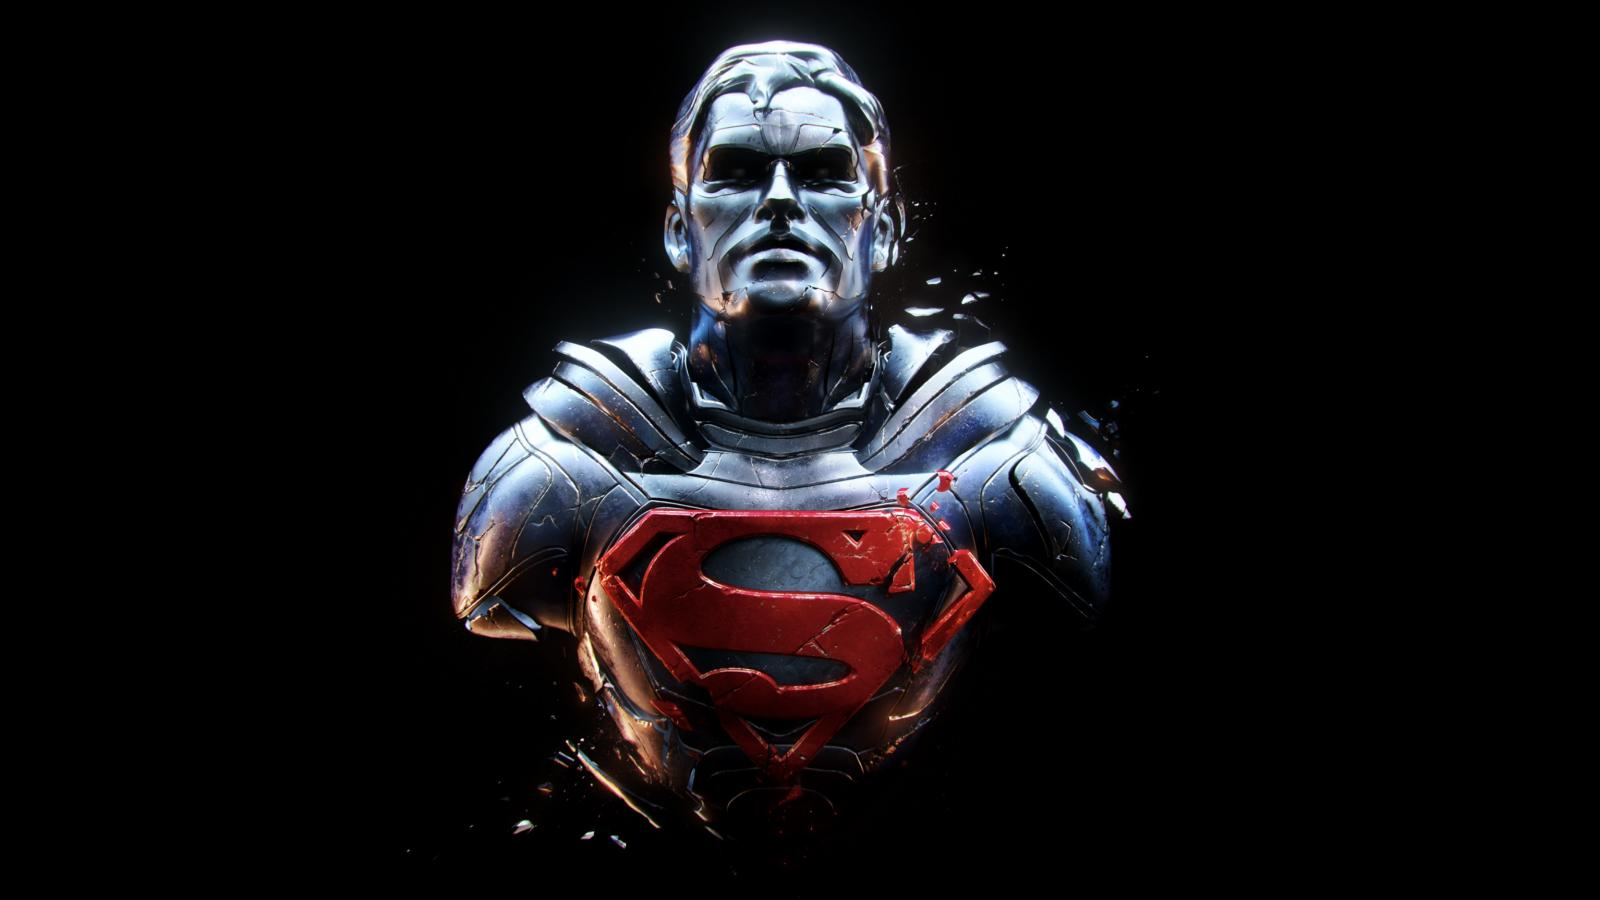 Digital Art: Mad Man of Steel by Adam Spizak